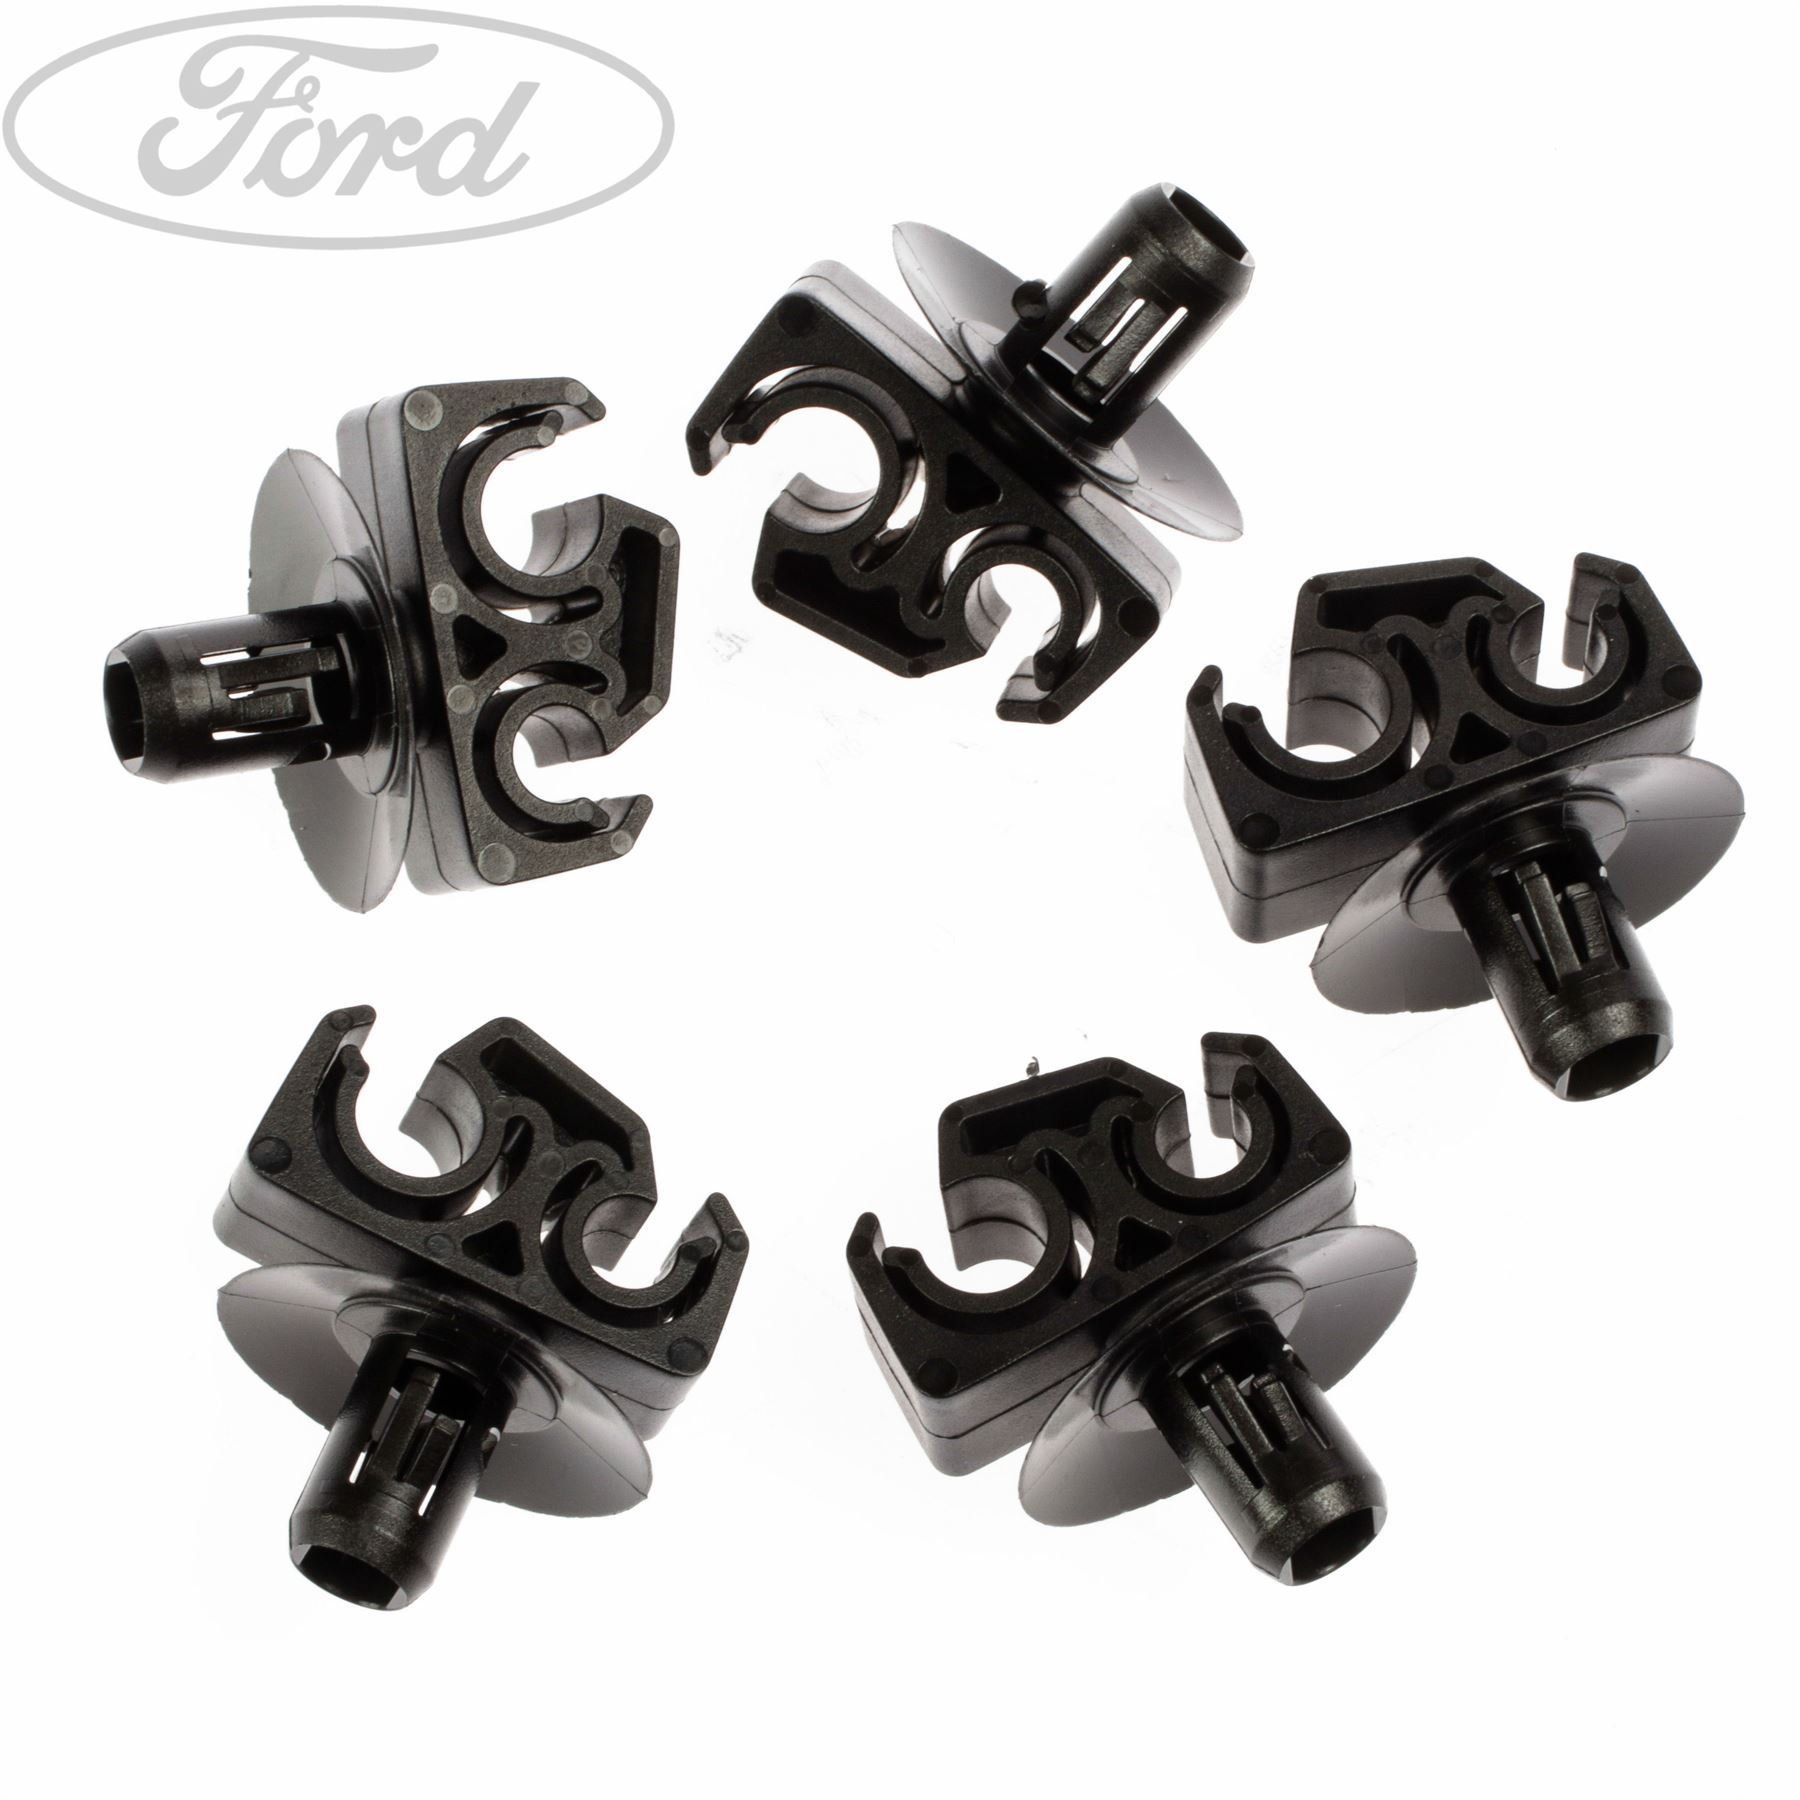 Genuine Ford Fuel Lines Clip x5 7021463